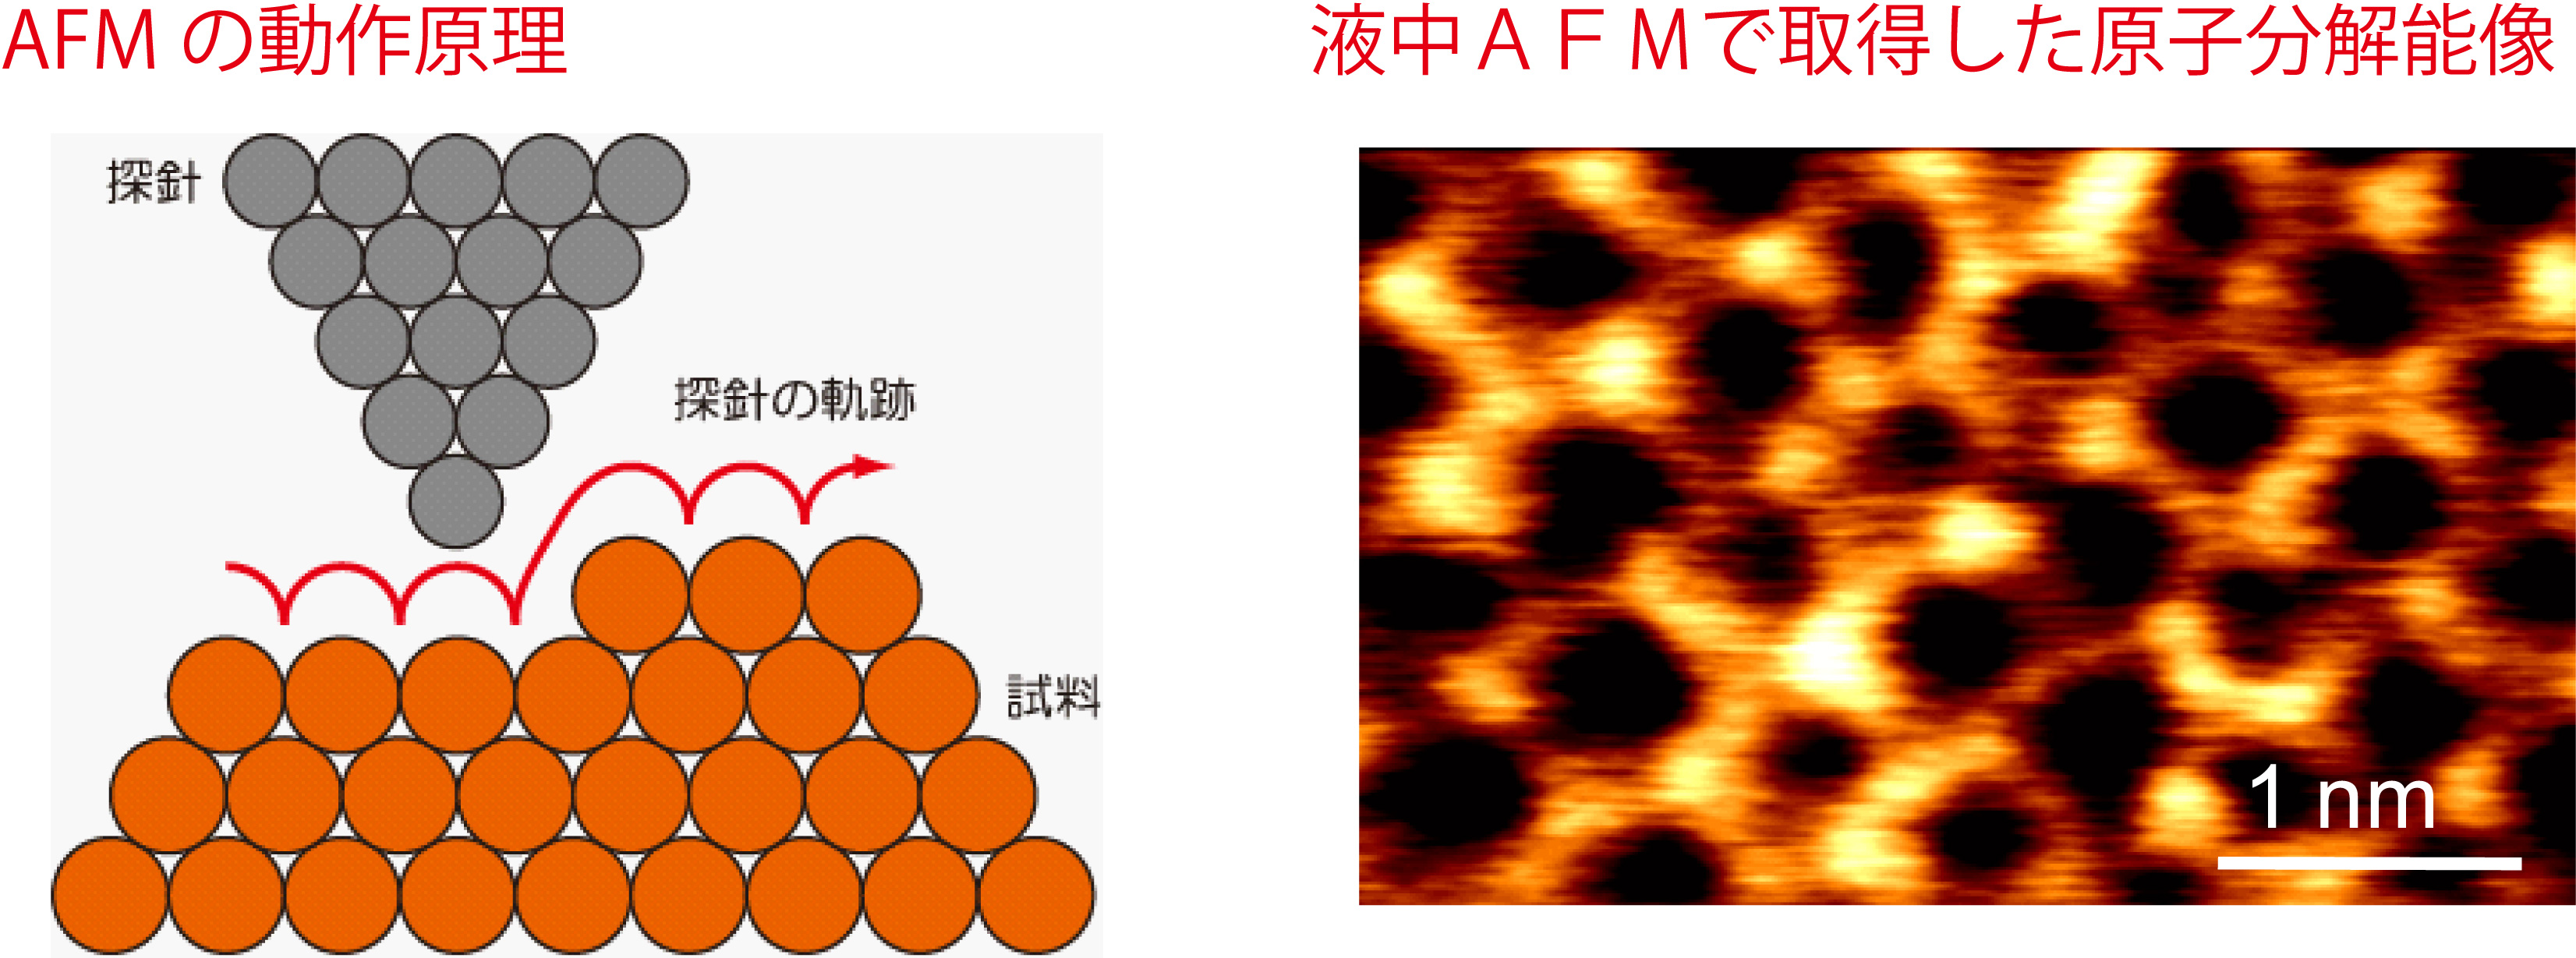 Development of high-resolution atomic force microscopy technologies for applications for biophysics